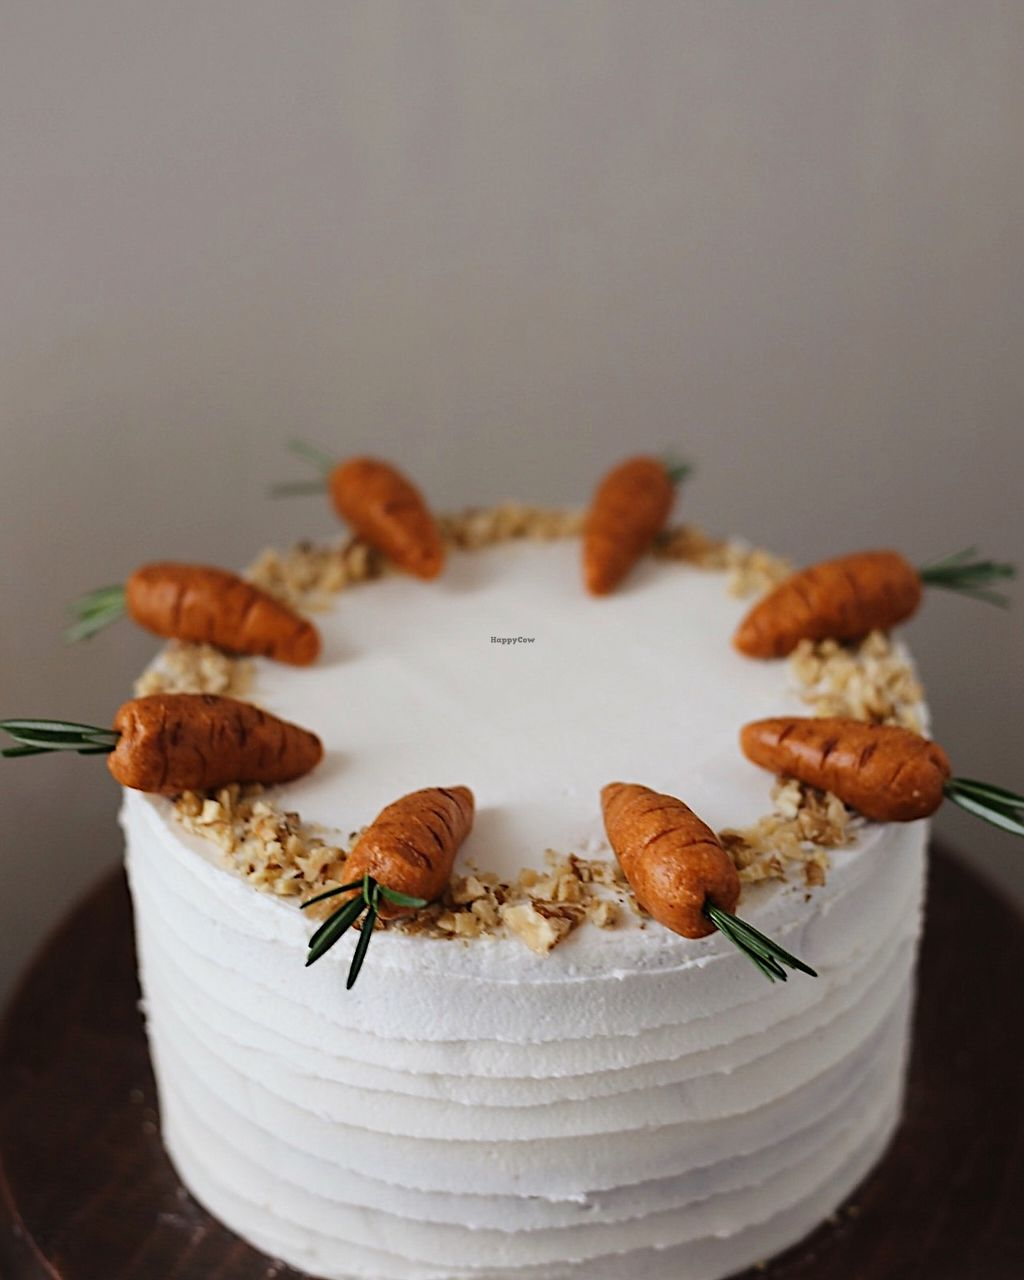 "Photo of Seth's Coffee  by <a href=""/members/profile/JazminMartens"">JazminMartens</a> <br/>Vegan carrot cake <br/> April 24, 2018  - <a href='/contact/abuse/image/89213/390273'>Report</a>"